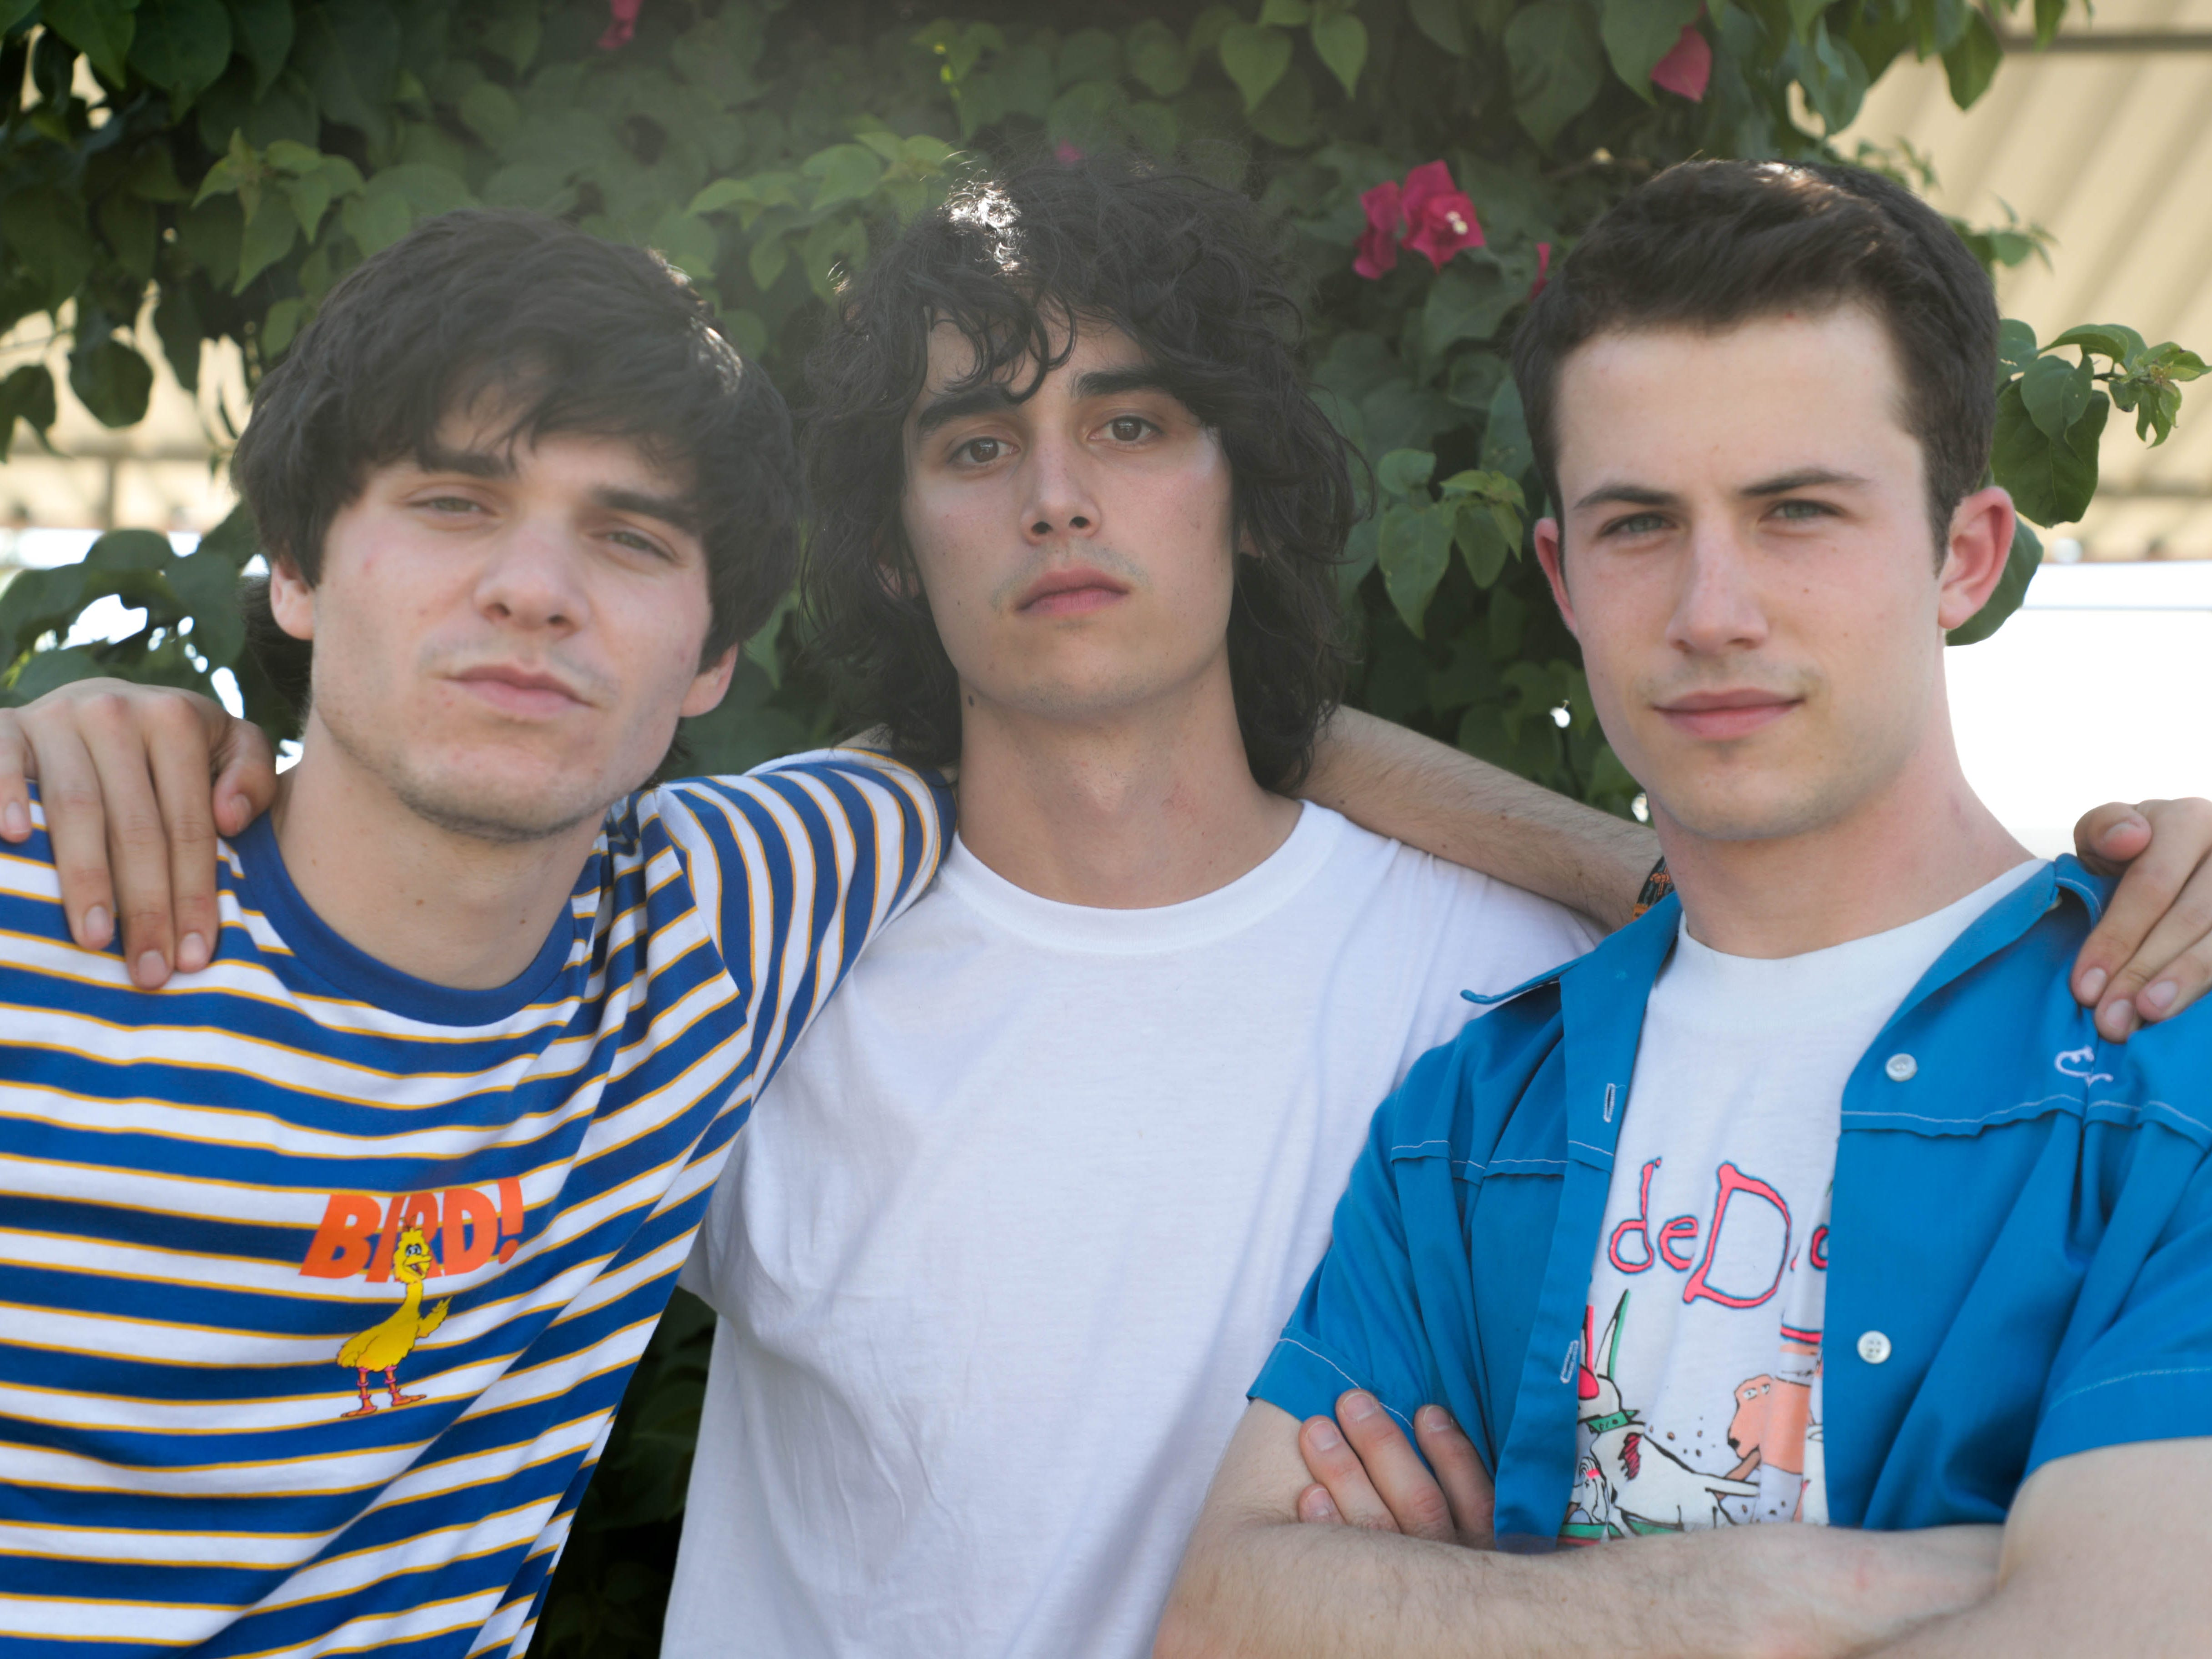 Wallows pose for a photo on Saturday, April 13, 2019 at Coachella Valley Music and Arts Festival in Indio, Calif.